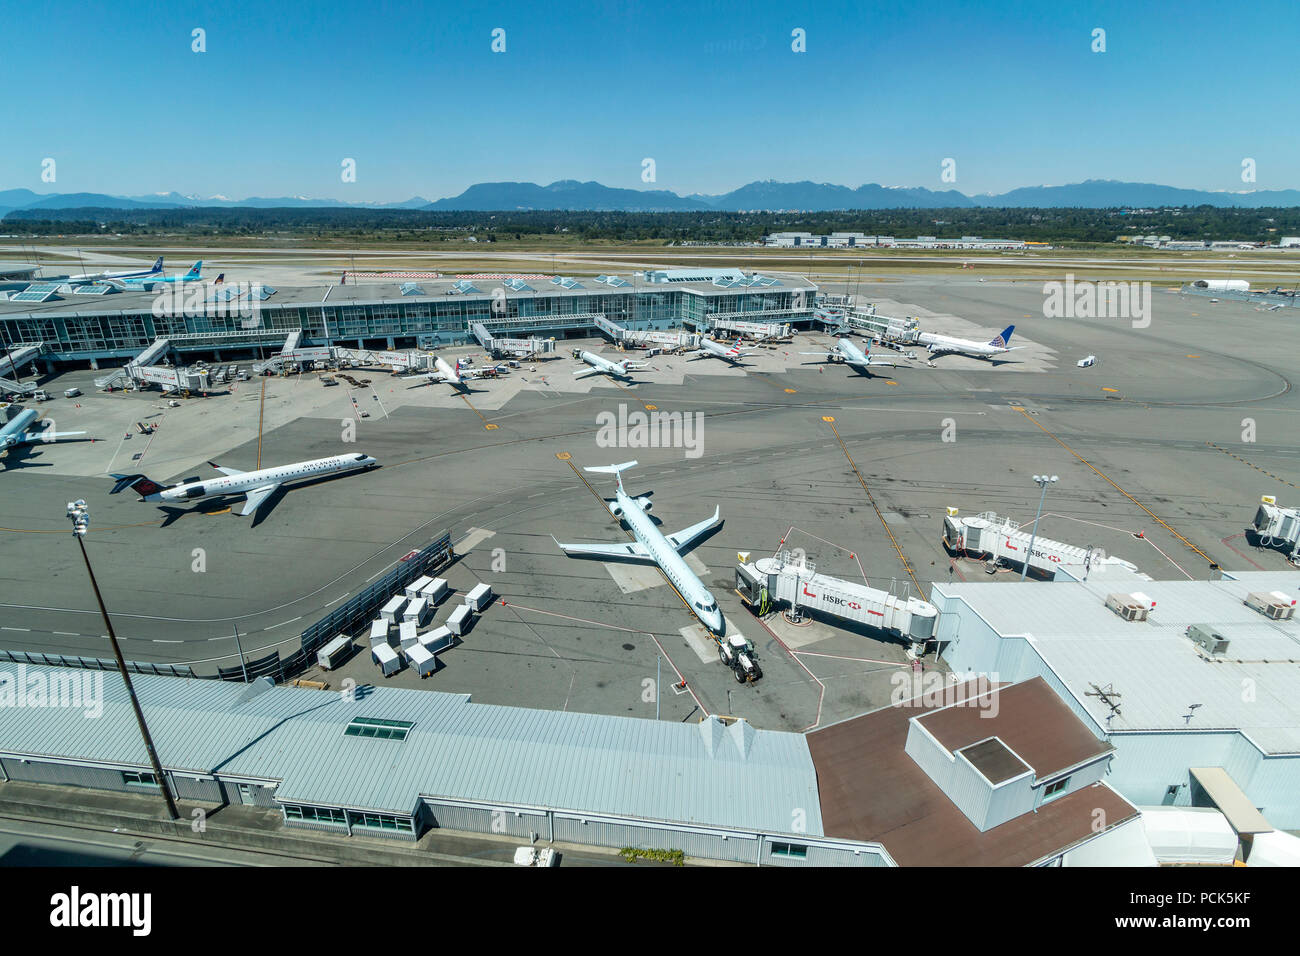 View of jets coming and going at Vancouver International Airport (YVR) from the window of the Fairmont Vancouver Airport hotel located in the airport. - Stock Image